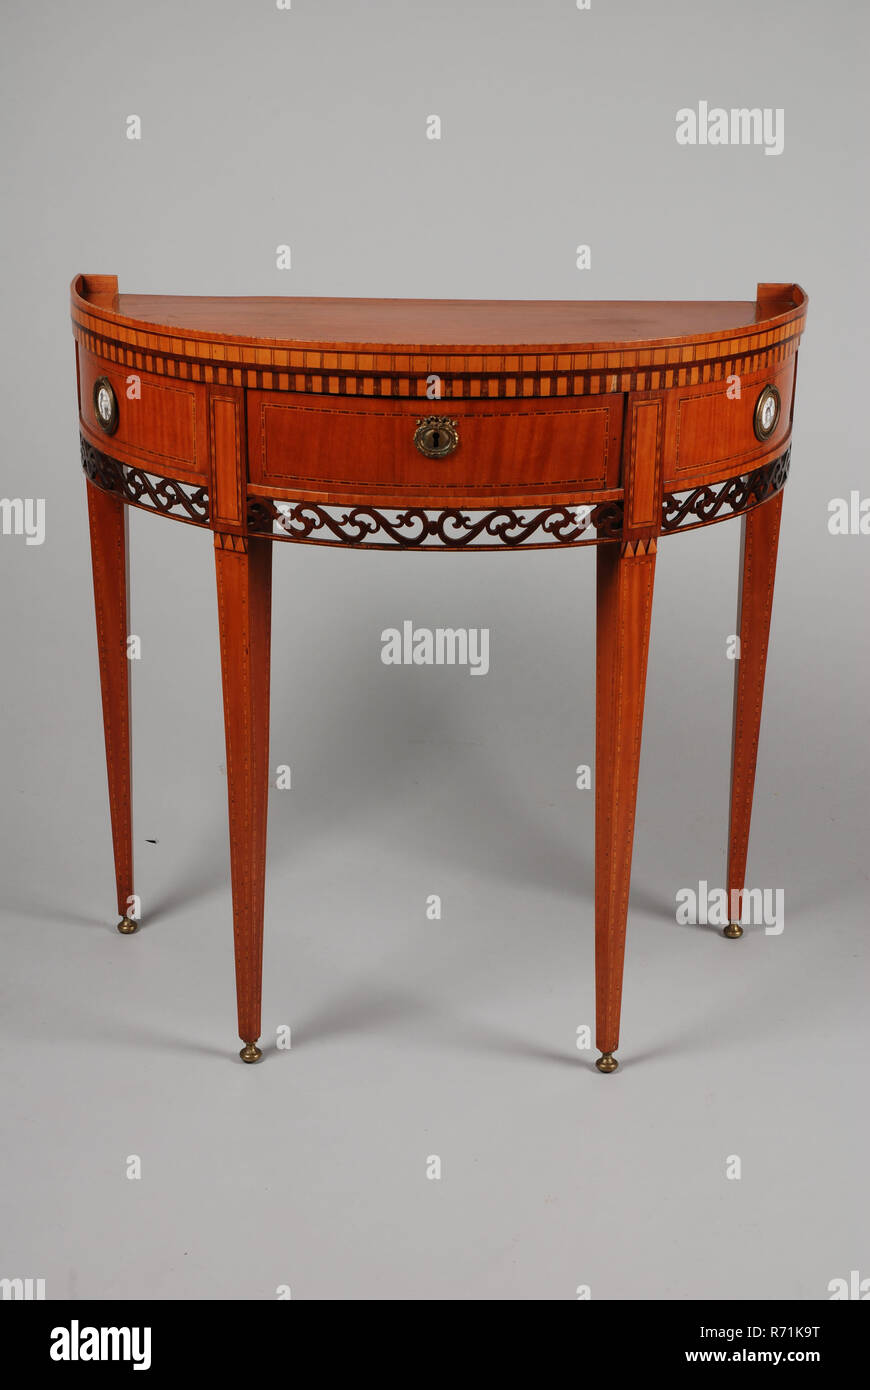 Louis Seize Half Moon Table Table Furniture Interior Design Wood